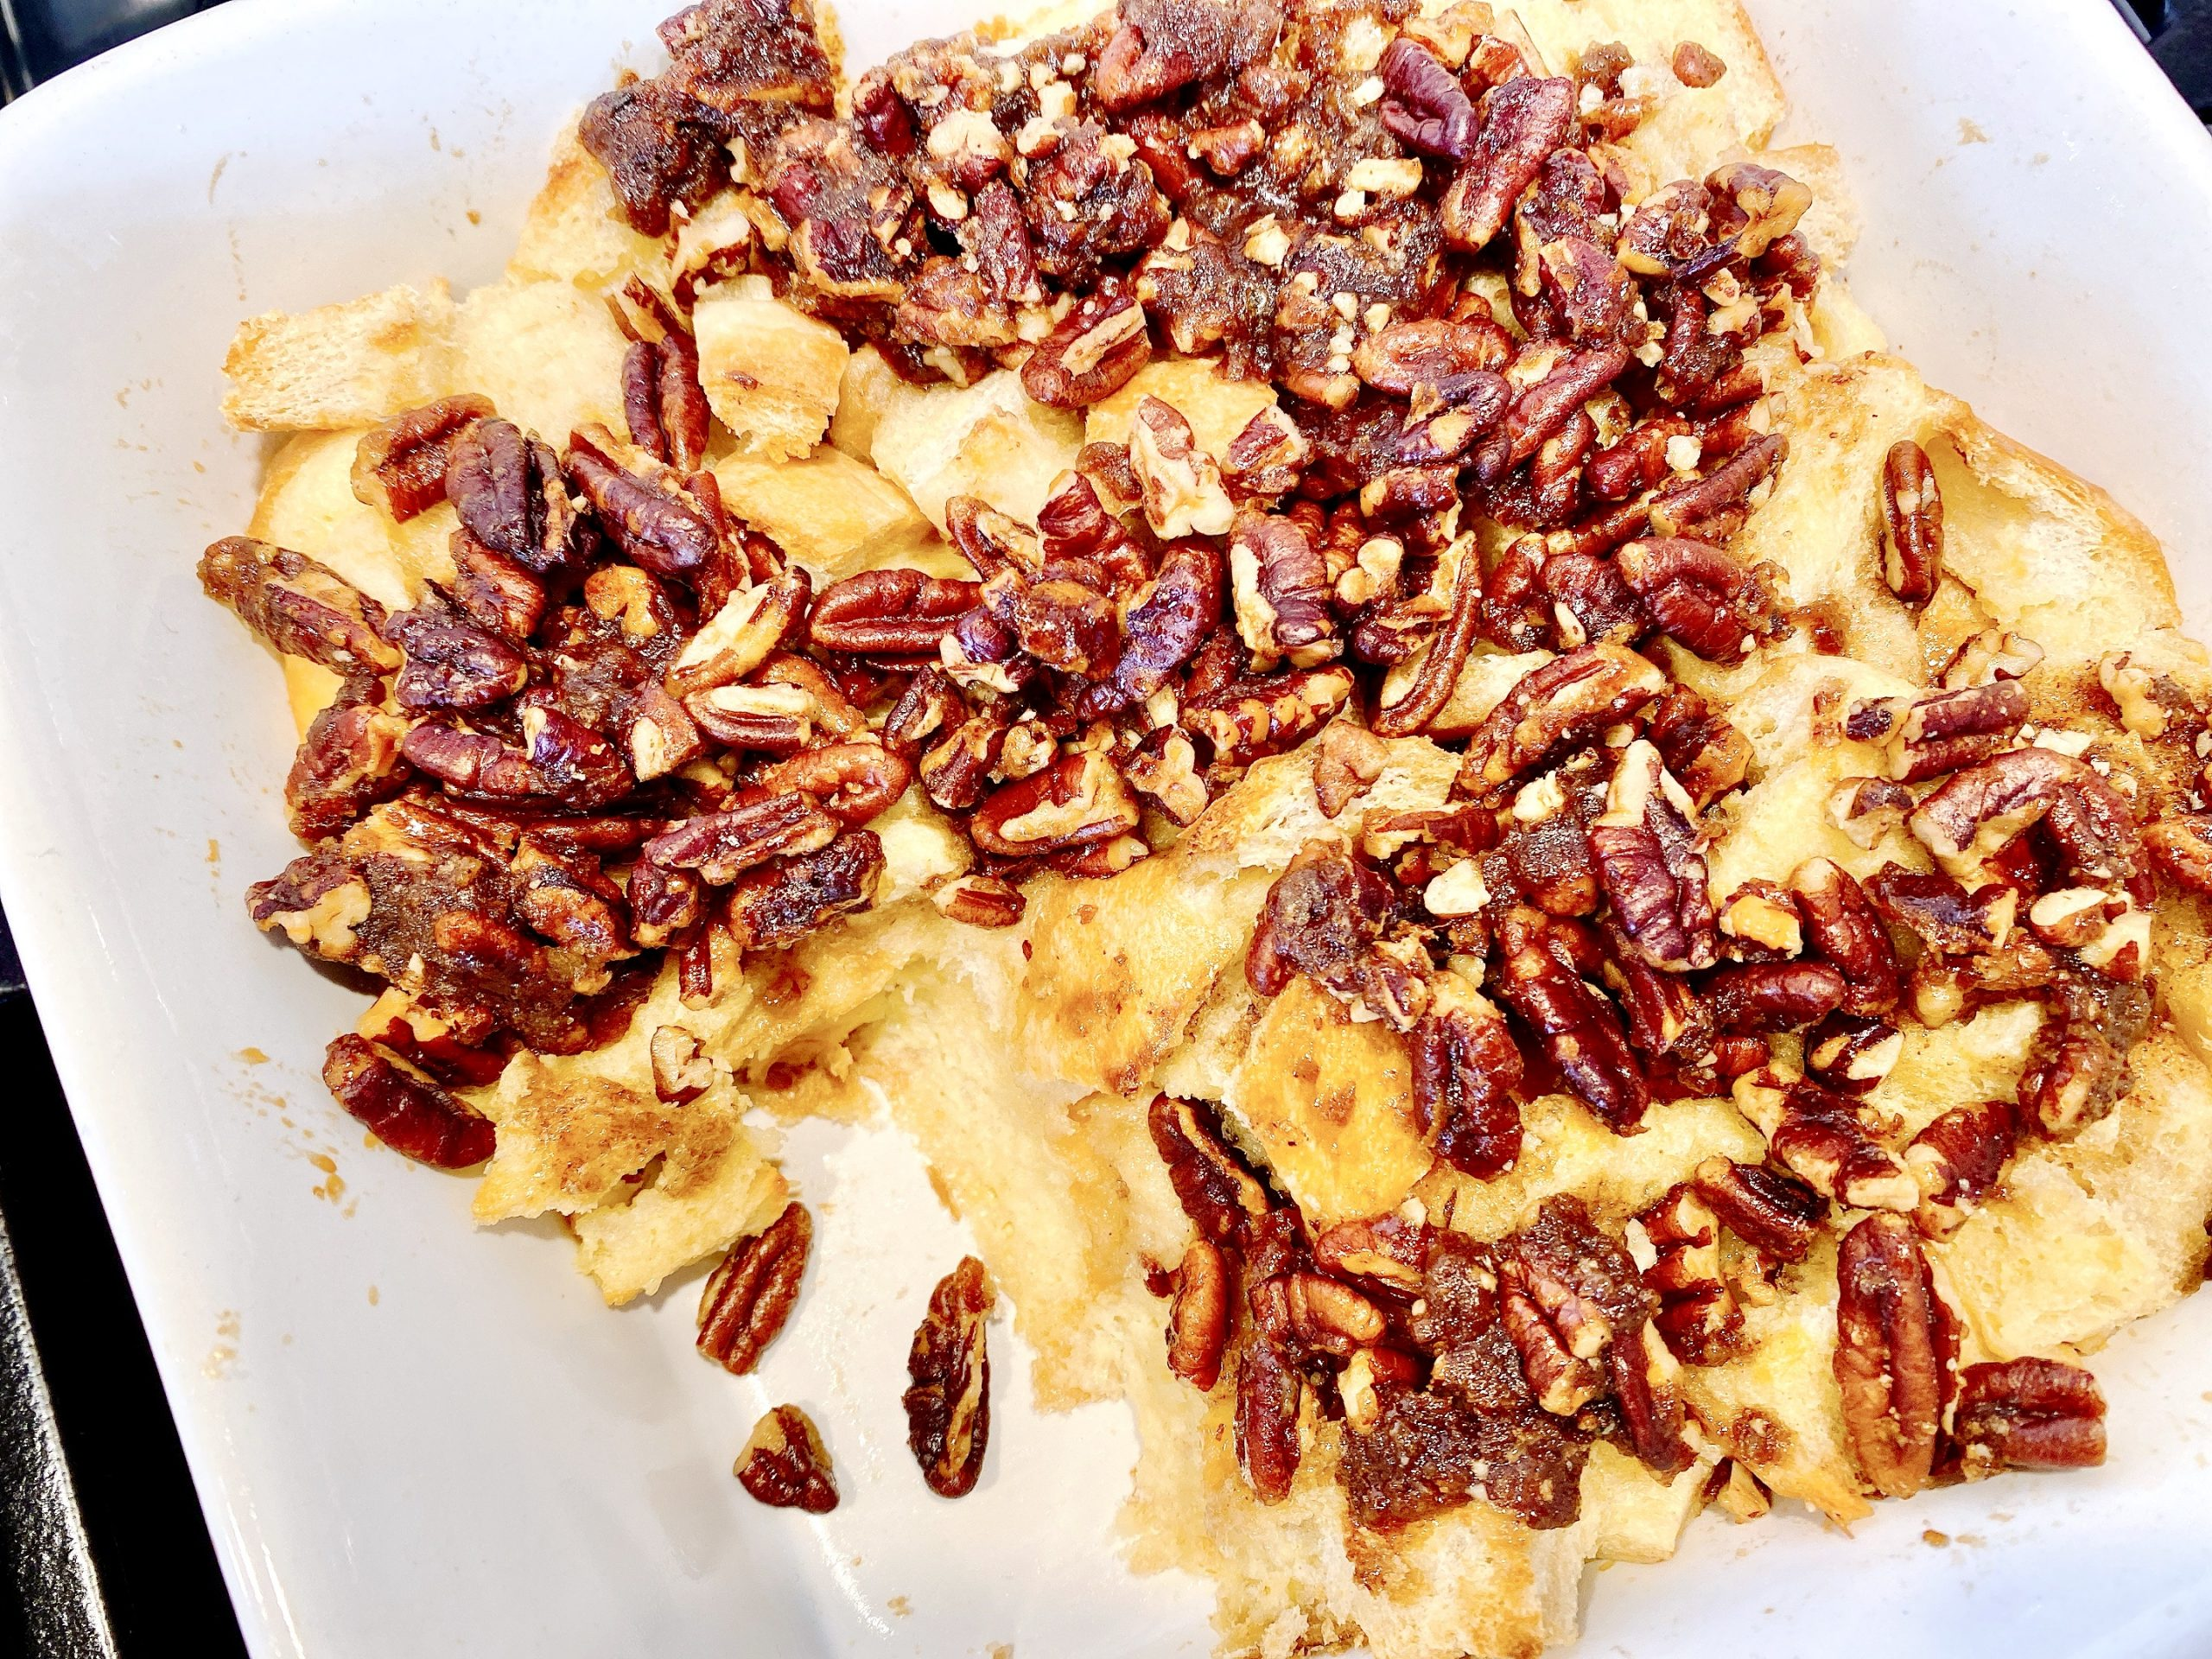 Casserole of Baked French Toast topped with pecans